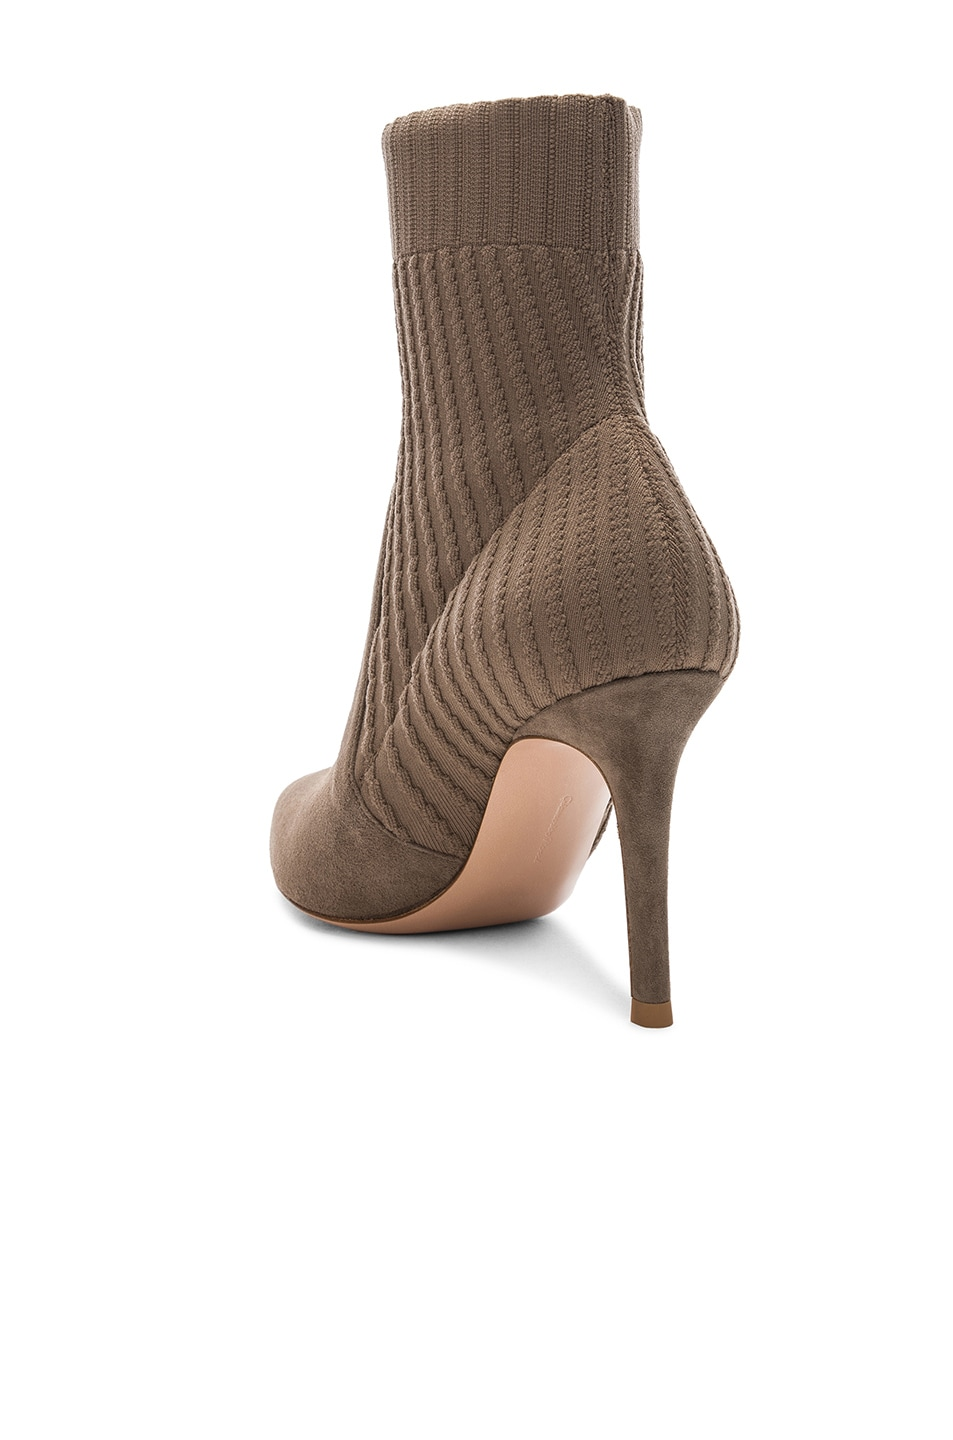 Image 3 of Gianvito Rossi Suede & Knit Katie Ankle Boots in Mud & Bisque